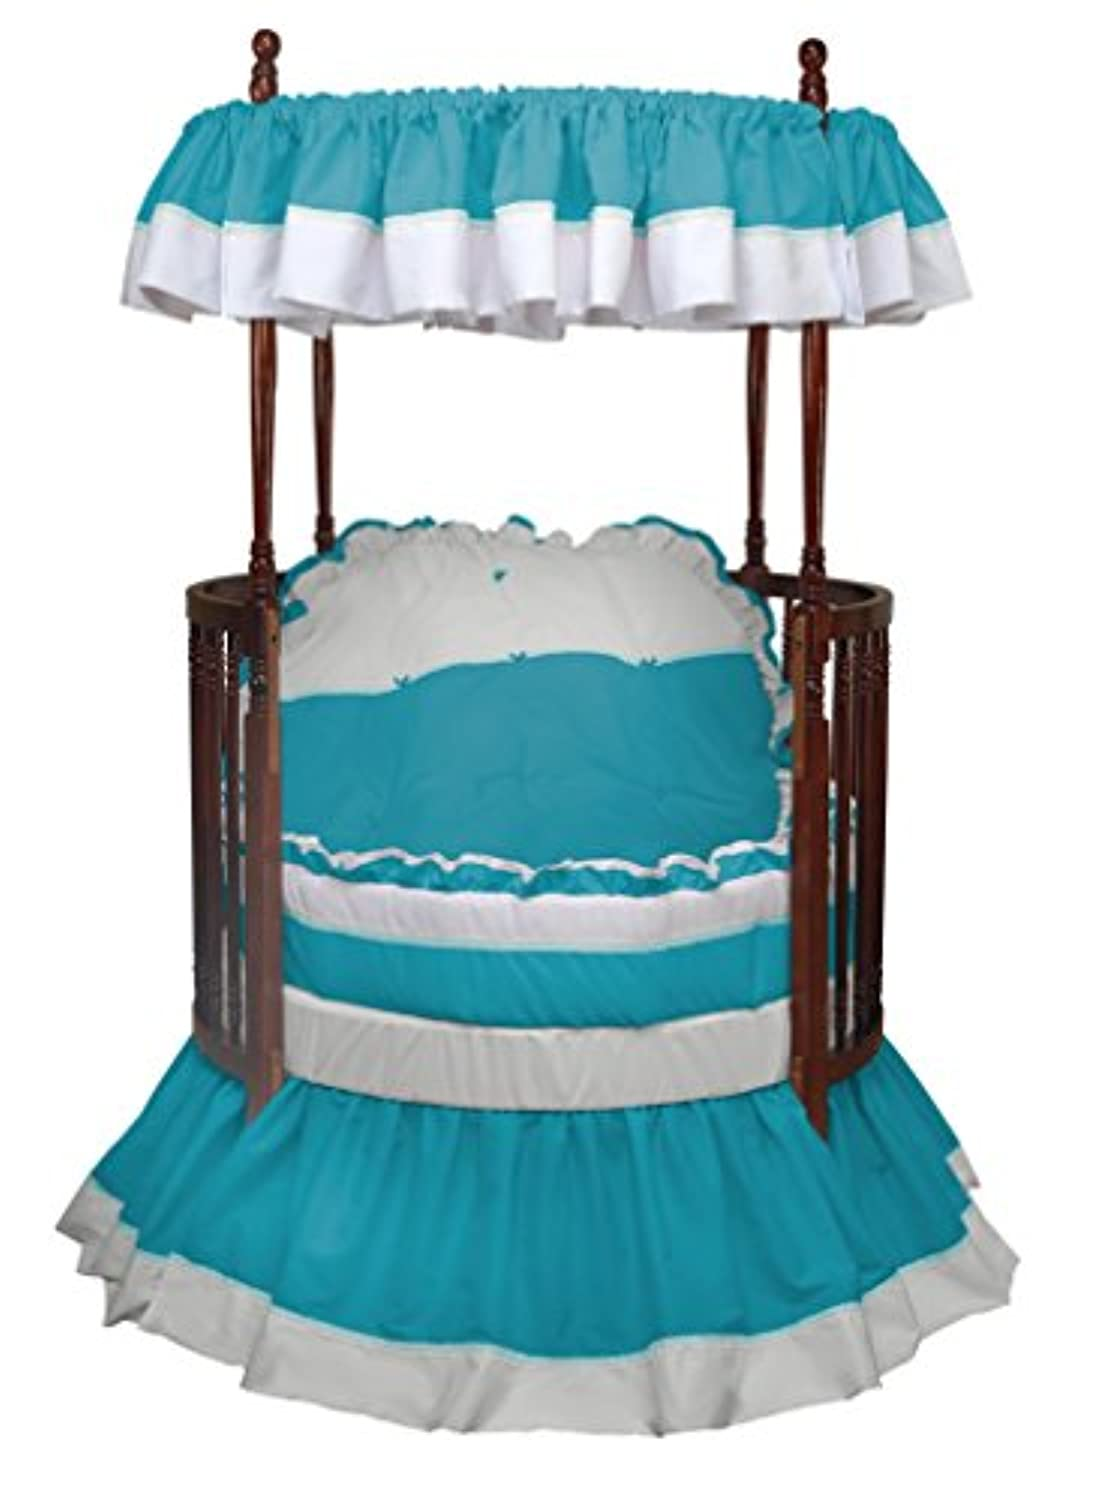 Baby Doll Bedding 6 Piece Regal Round Crib Bedding Set, Aqua by BabyDoll Bedding